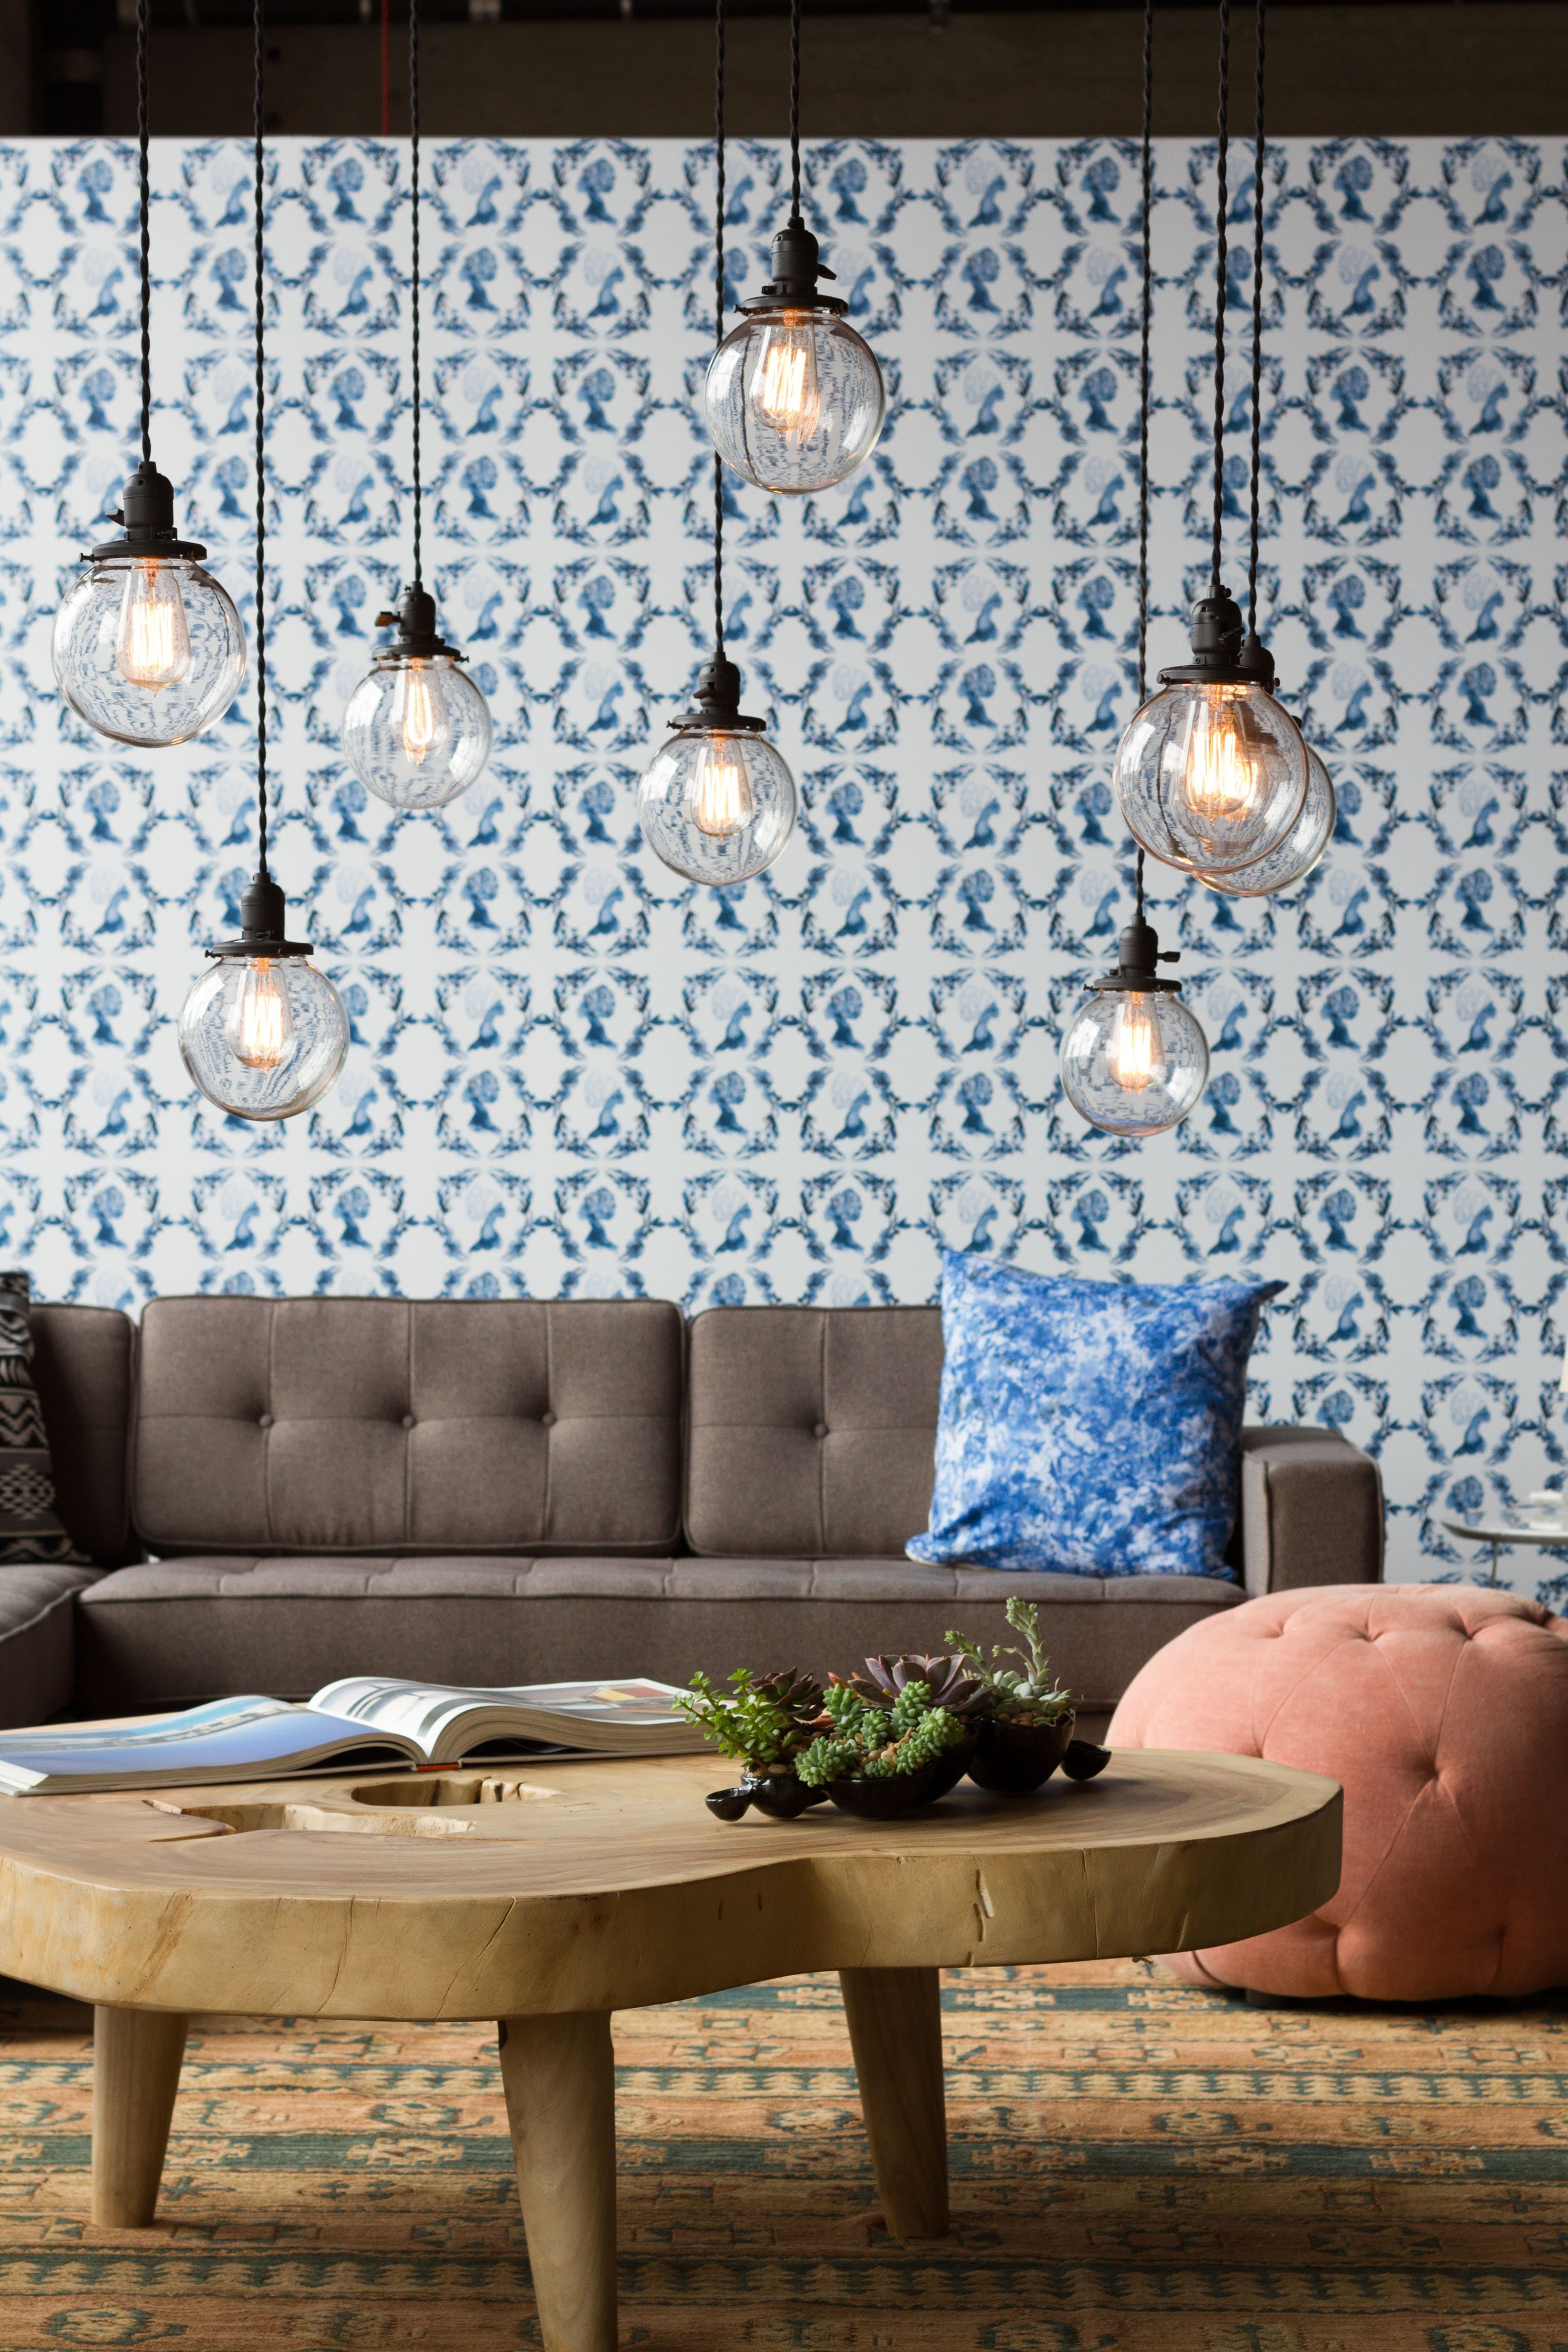 10+ Show home lights app ideas in 2021